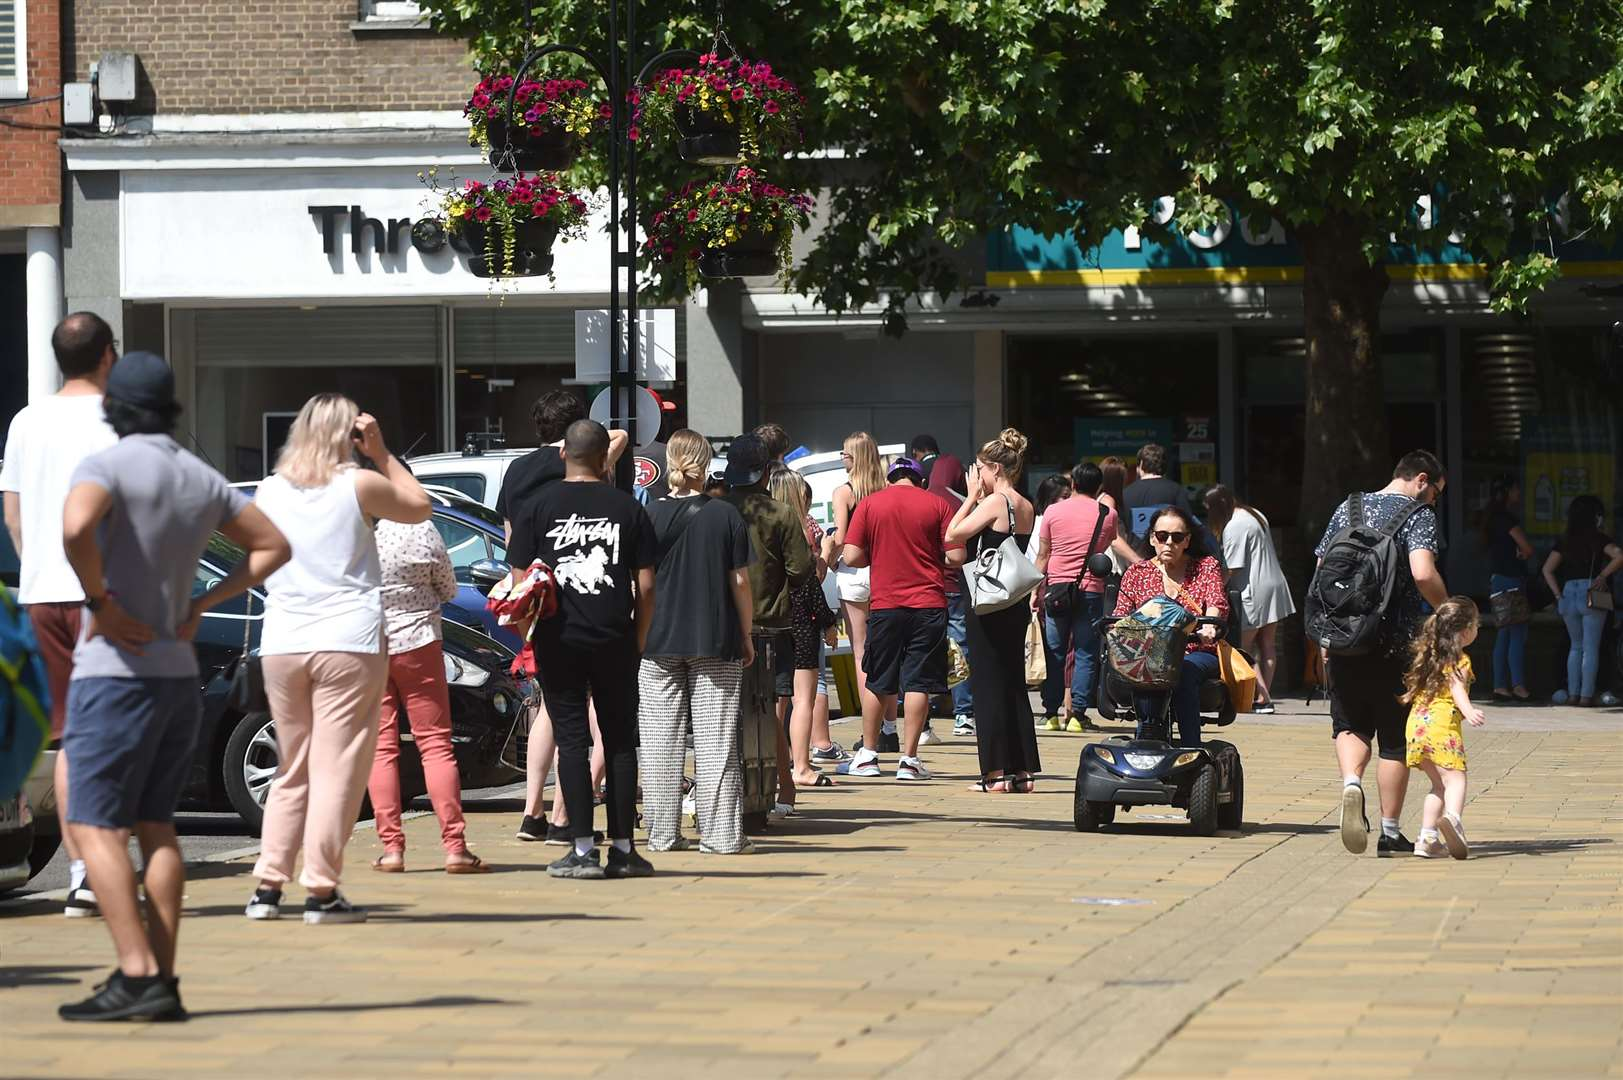 Shops are opening and moving in Bury St Edmunds town centre	Picture by Mecha Morton